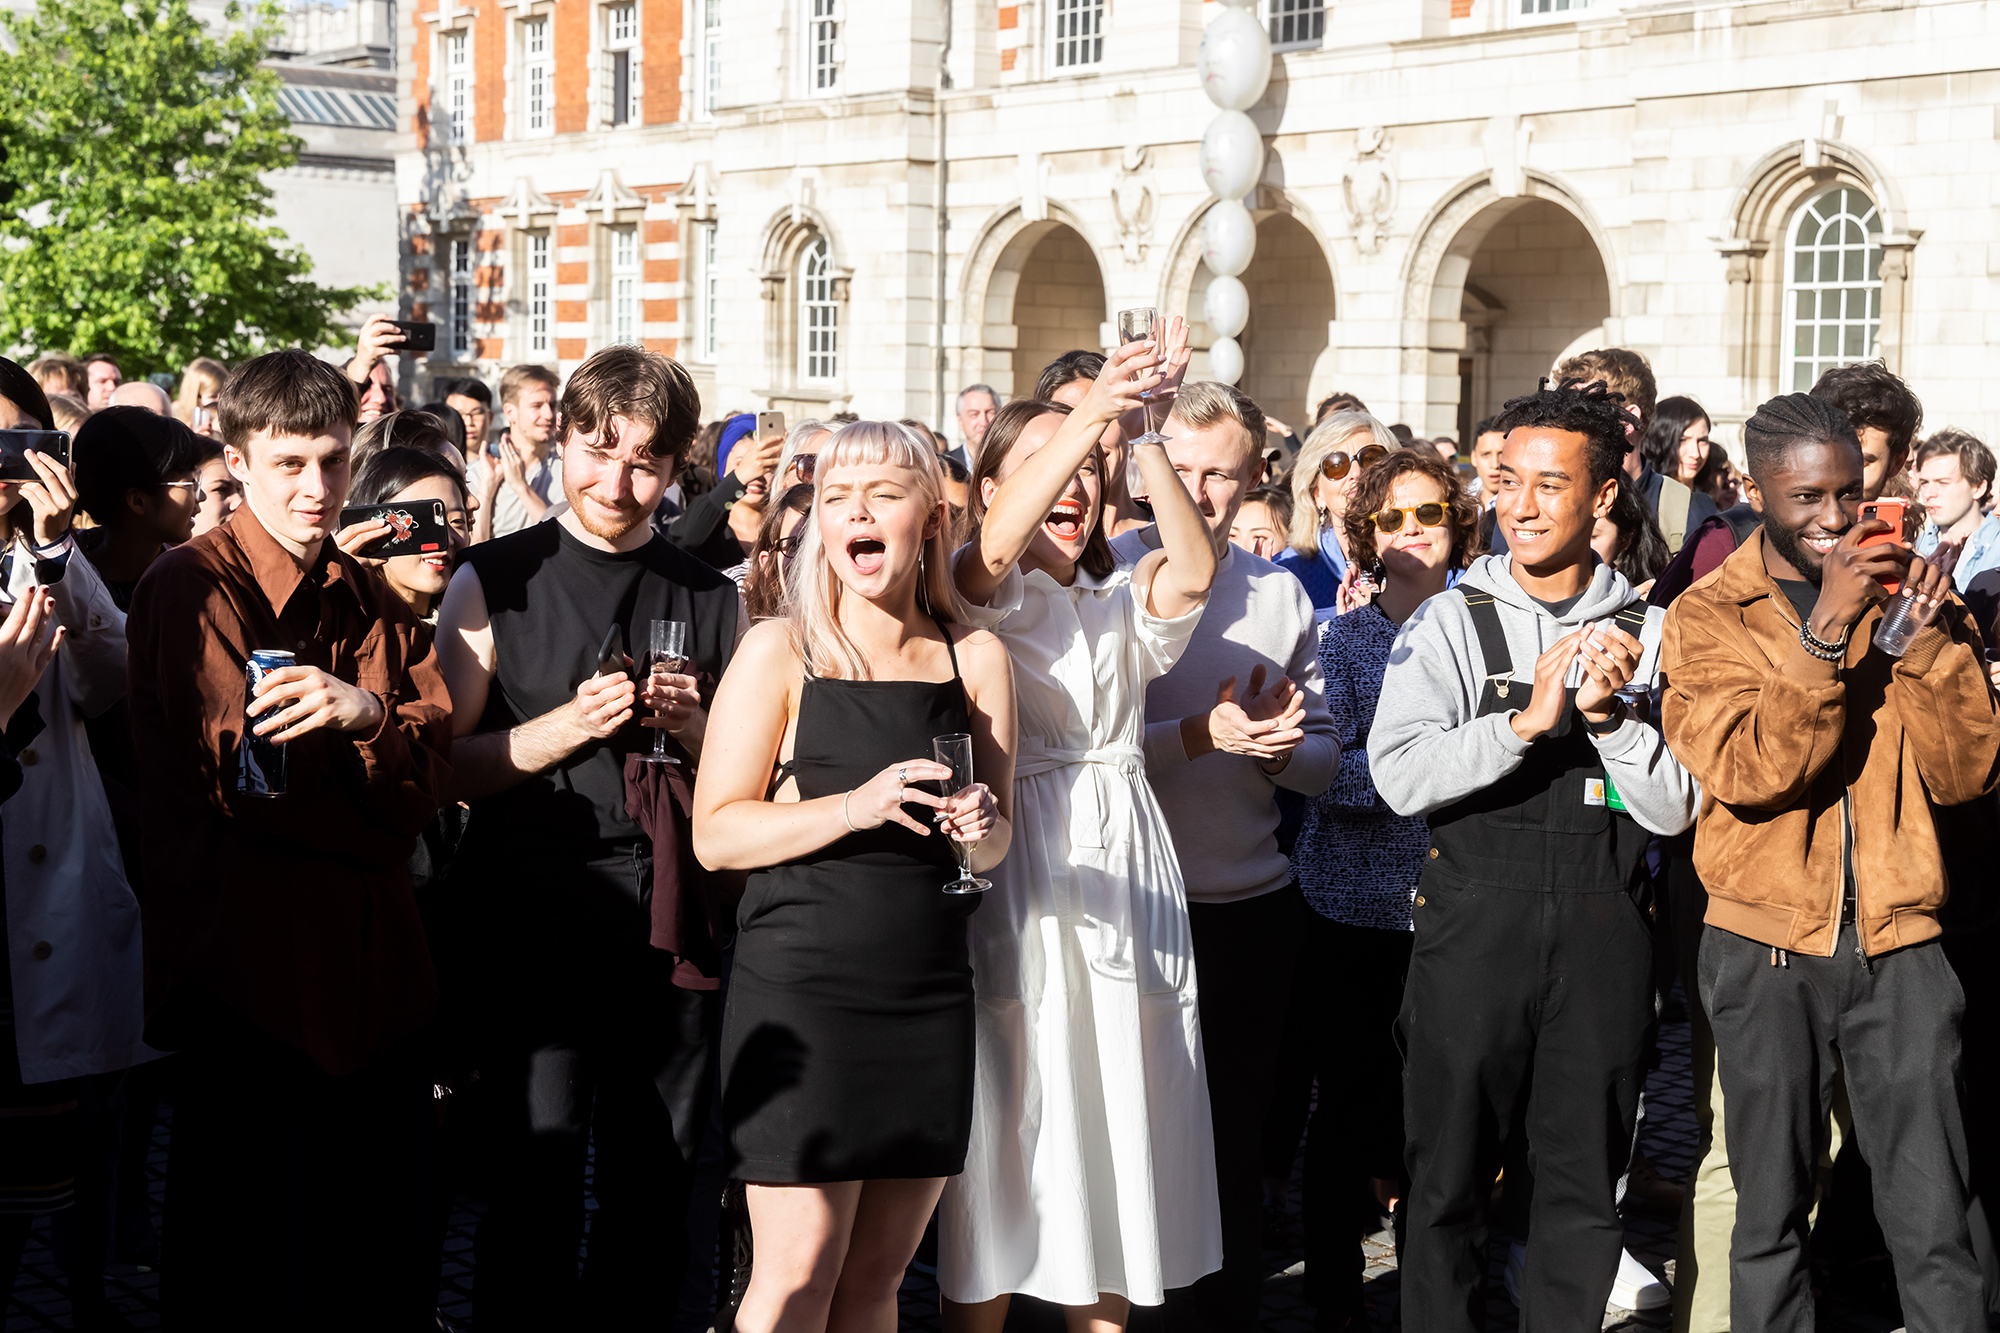 A group of Chelsea students stands in the Parade Ground at Chelsea cheering and shouting in celebration of a prize being awarded. They hold drinks and on the right a student is taking a photo with his mobile phone.